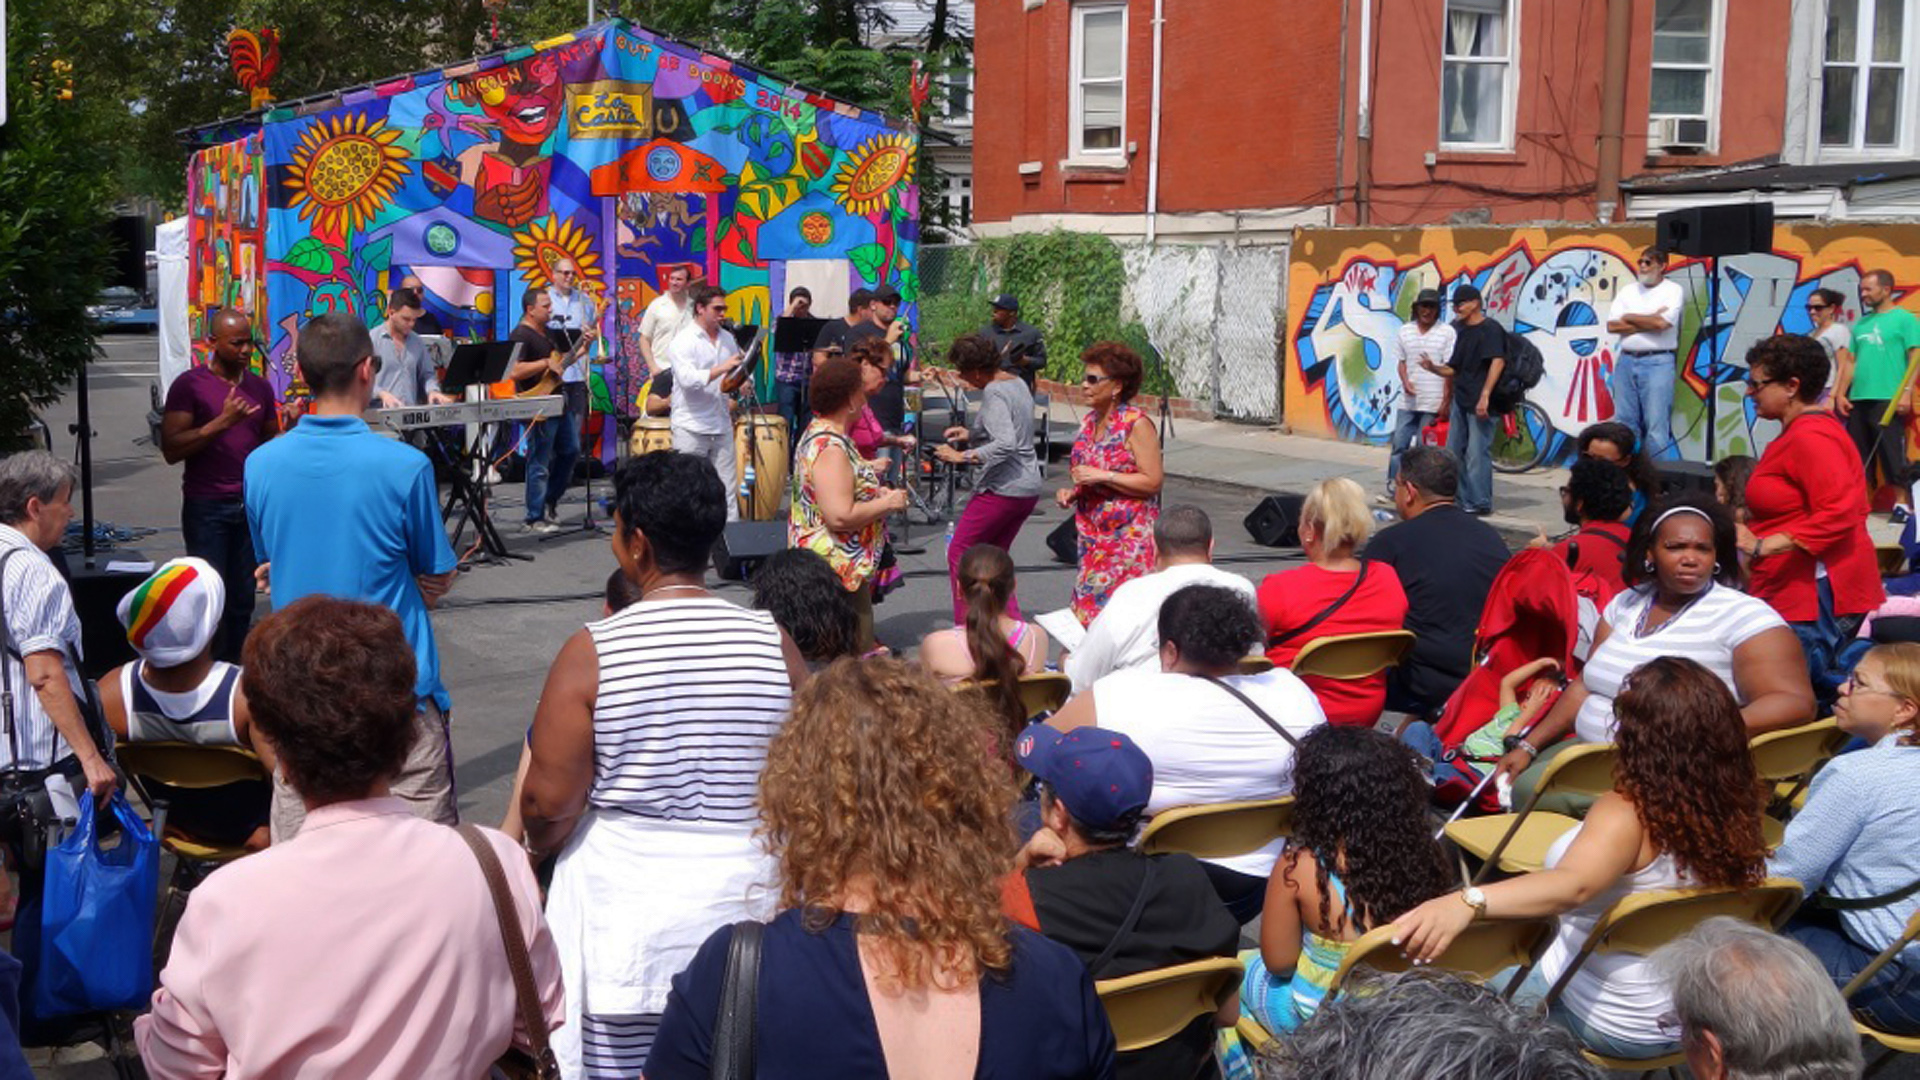 Las Casita: Outdoor concert and arts program at Teatro Pregones in the Bronx